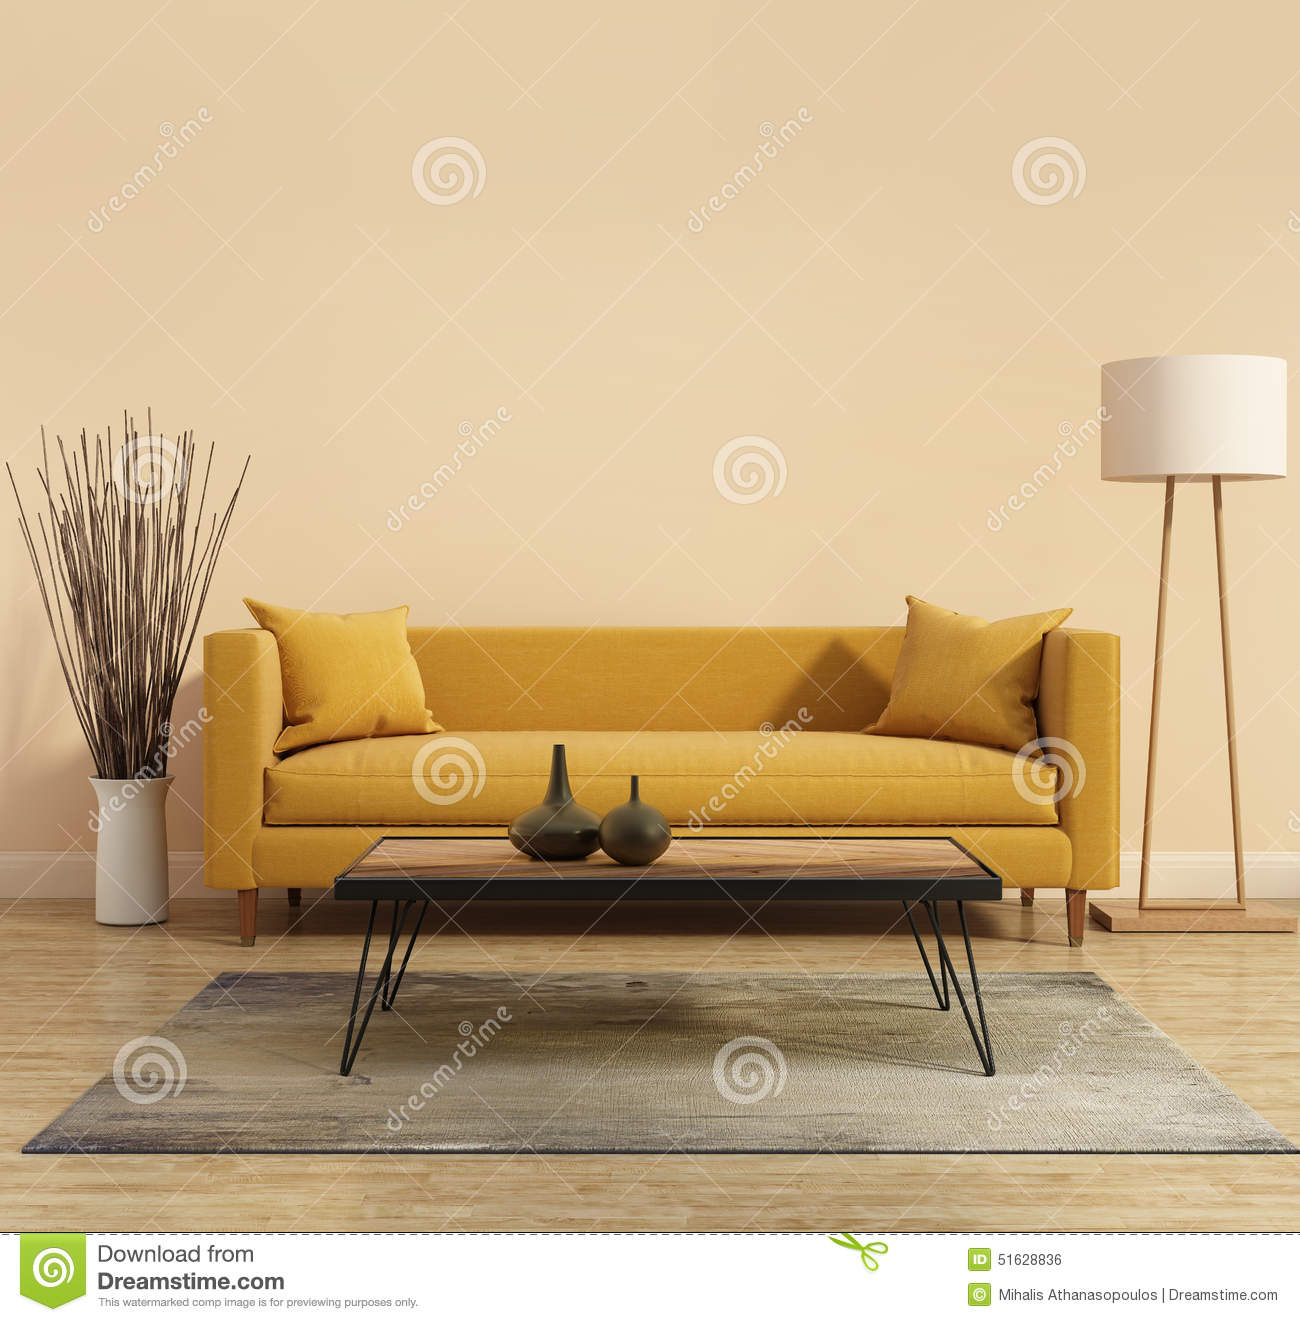 Royalty Free Stock Photo. Download Modern Modern Interior With A Yellow Sofa  In The Living Room ... Part 56